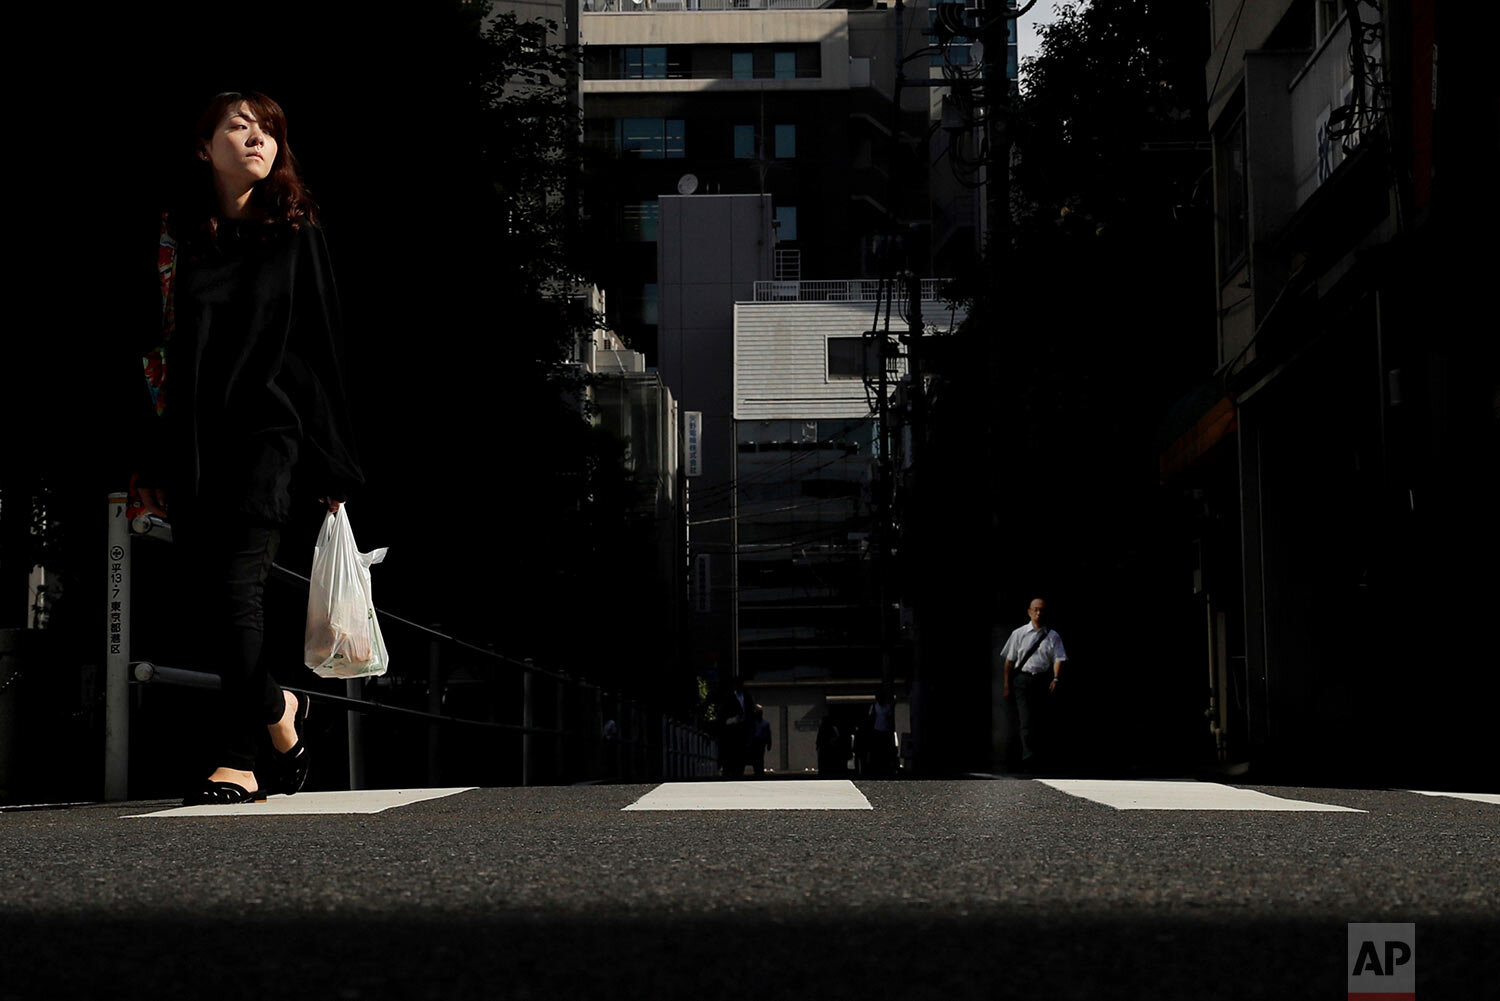 A woman crosses the street in the Shinbashi district of Tokyo, Japan, Friday, Sept. 20, 2019. (AP Photo/Christophe Ena)